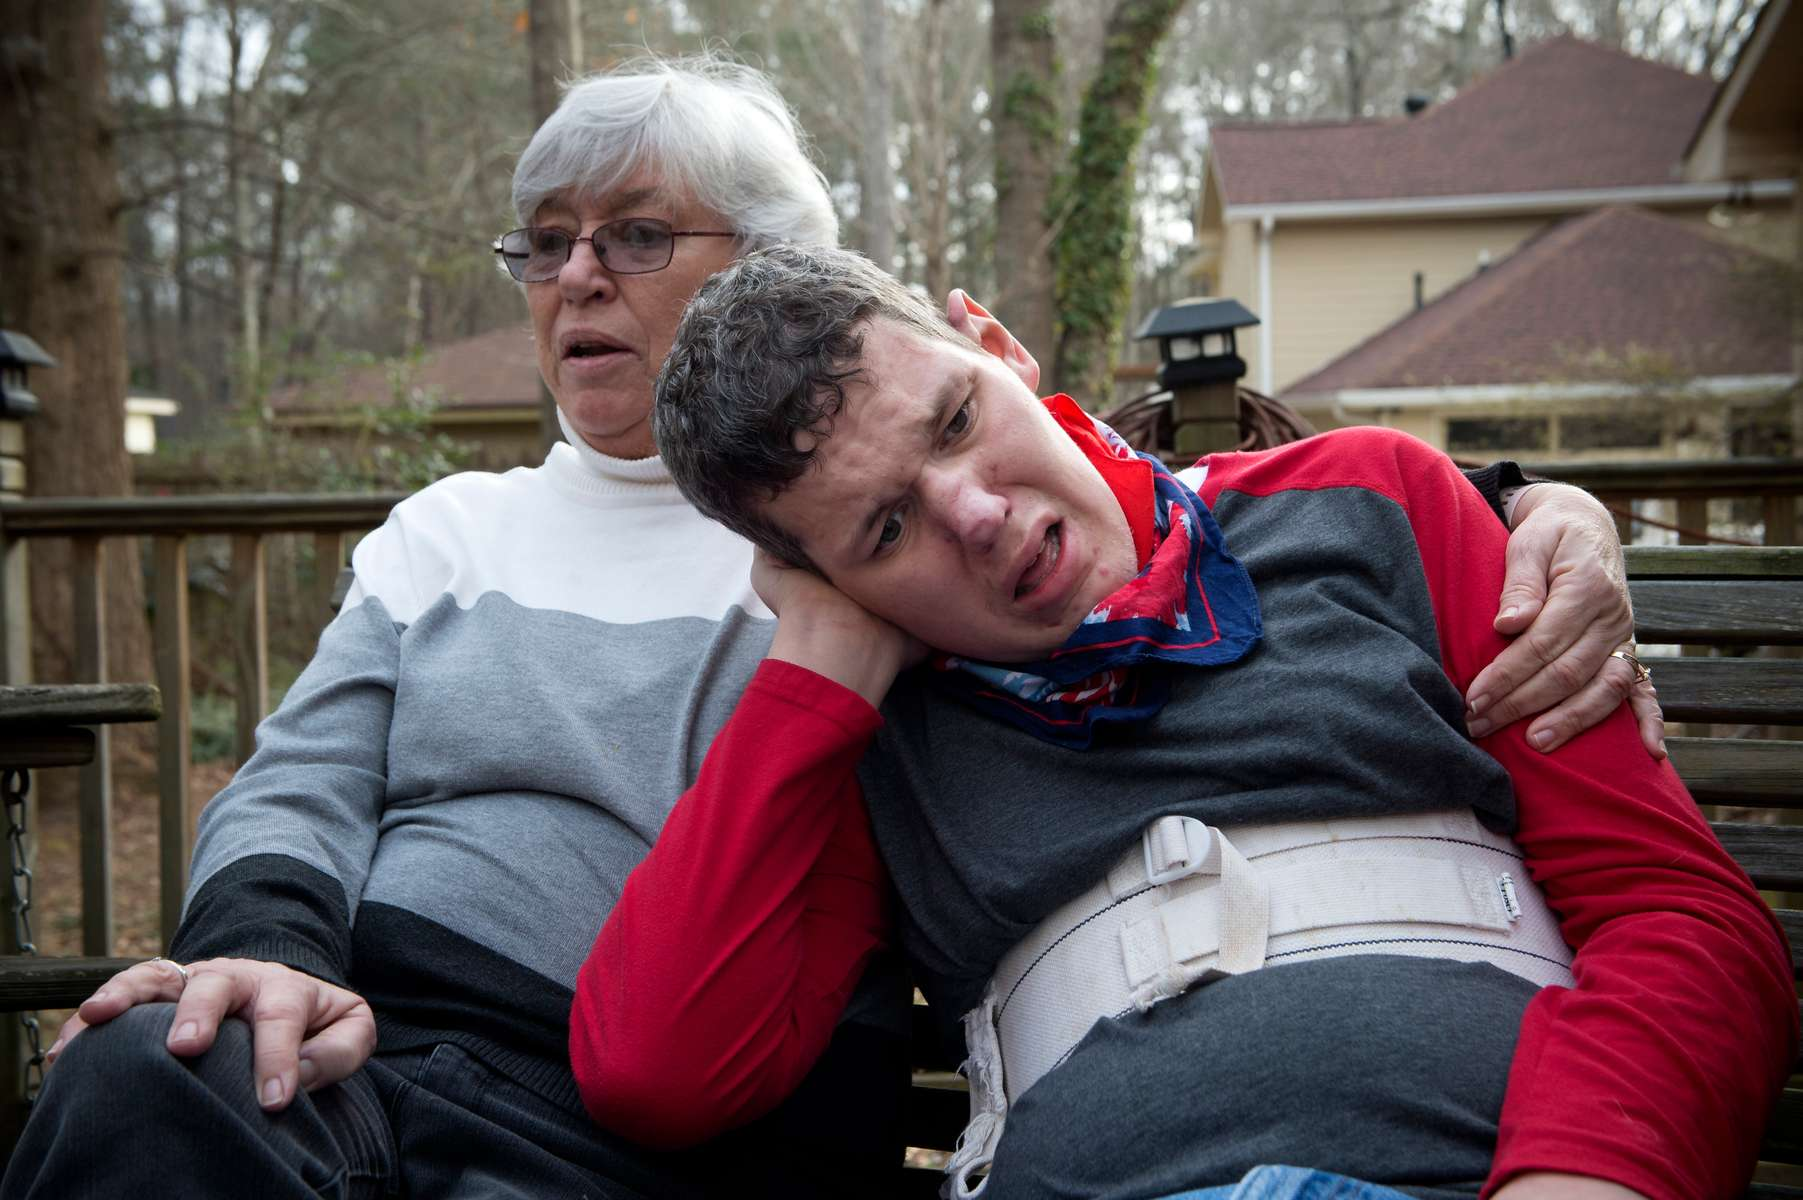 "Sheila McBroom comforts her disabled son Tim as they sit on the family deck.   McBroom and her husband Mike  often lie awake at night, filled with anxiety about Tim's future. Tim, 36, who is non-verbal and experiences severe autism, has seizures and behavioral issues. McBroom and his wife are doing their best to provide their son with a safe and secure environment in their Jonesboro home, with daily help from Medicaid waiver-funded support staff. But proposed cutbacks to those Medicaid-funded services turn their son's life upside down. Georgia's disability officials are currently wrestling with likely budget cuts that will dramatically impact their son, and 187 others in the state with profound intellectual disabilities who need extensive daily support to remain at home.The state's proposed cutbacks affect 187 individuals like Tim who need more than 16 hours a day of support that allows them to remain at home, integrate into their communities, and enjoy some degree of independence, Mike McBroom explained.  ""Under proposed changes to the waiver, Tim will no longer qualify for the person-centered care he needs to remain here,"" he said.  ""State officials said they have identified the needed numbers of beds in various locations around the state -- and all of them are in group homes."""